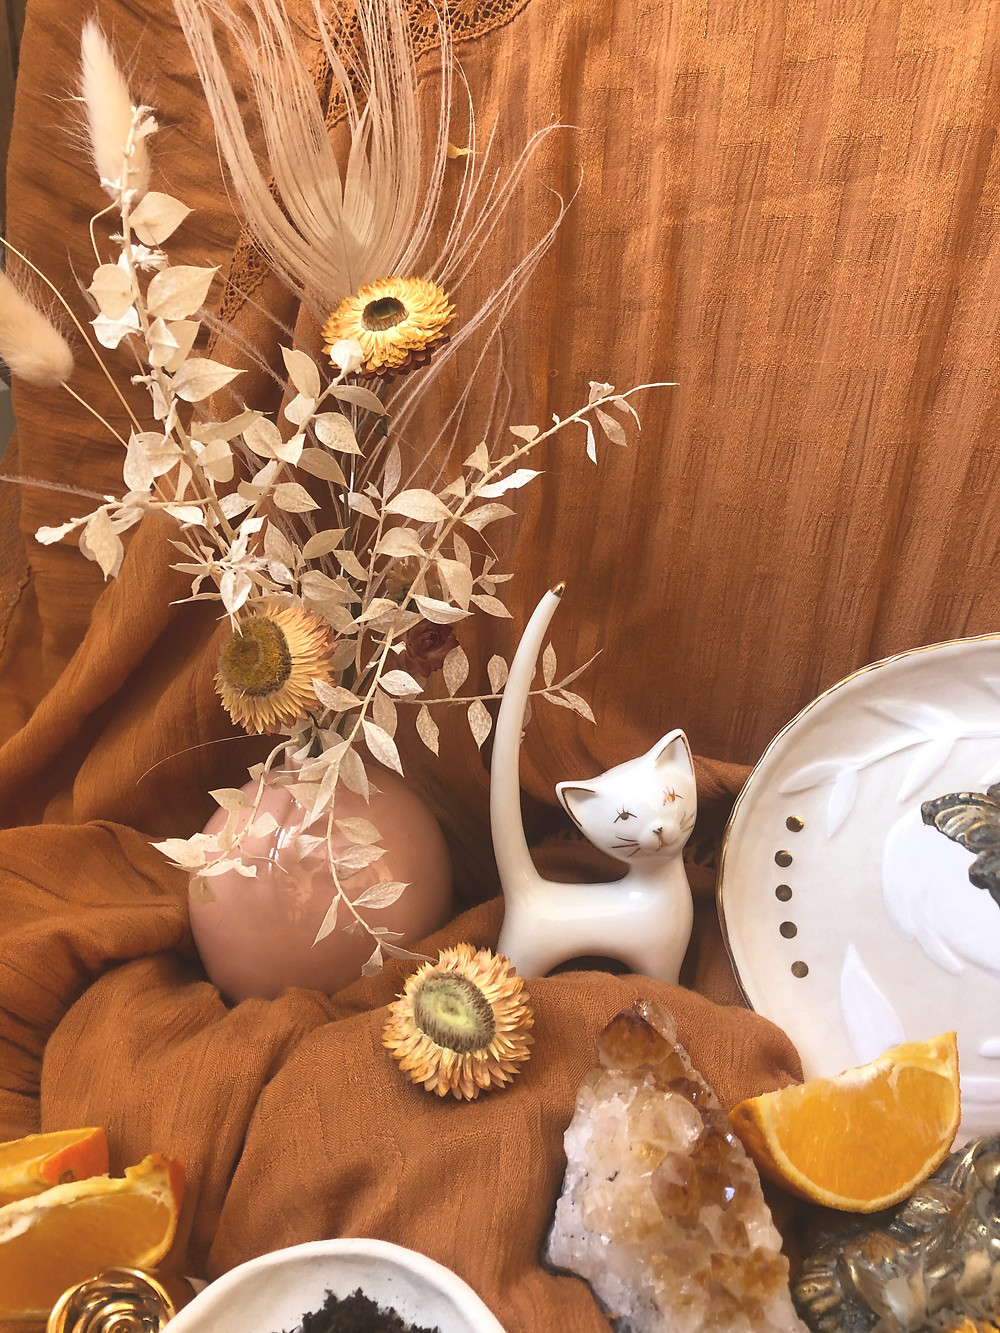 ceramic cat, dish, floral bouquet, citrine, floral and citrus offerings for full moon ritual